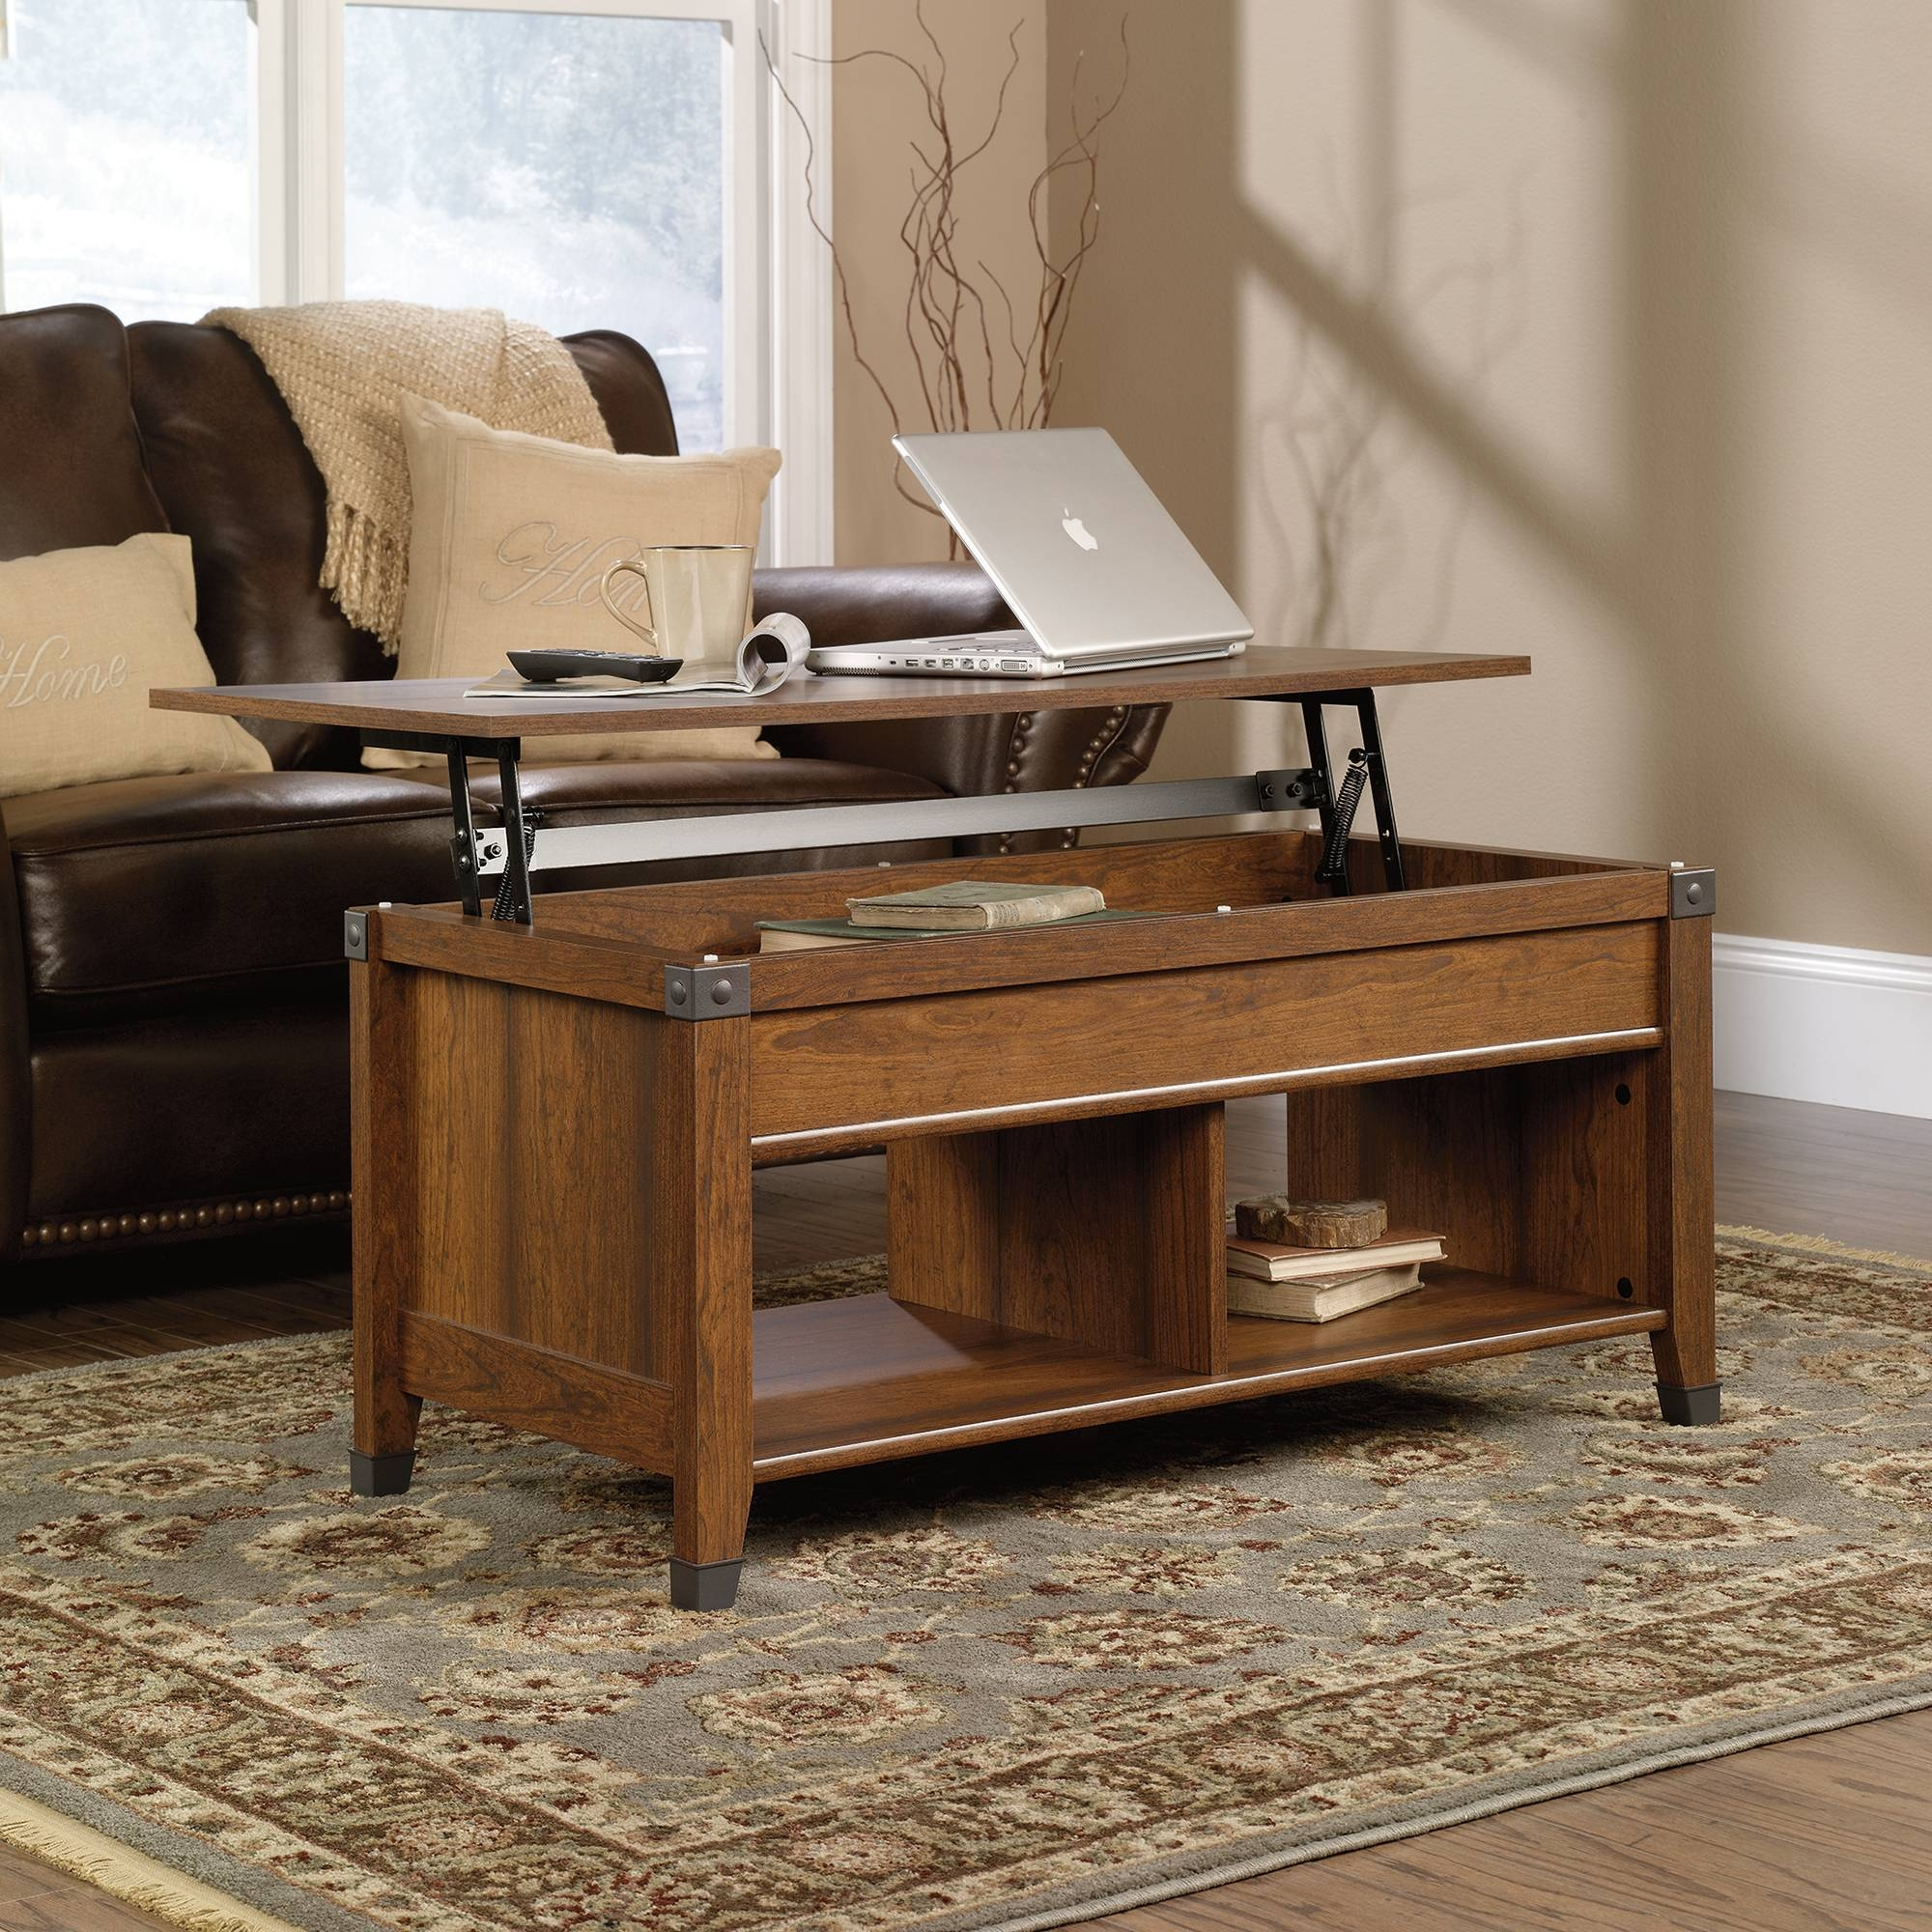 Carson Forge | Lift-Top Coffee Table | 414444 | Sauder with Coffee Tables Top Lifts Up (Image 3 of 30)